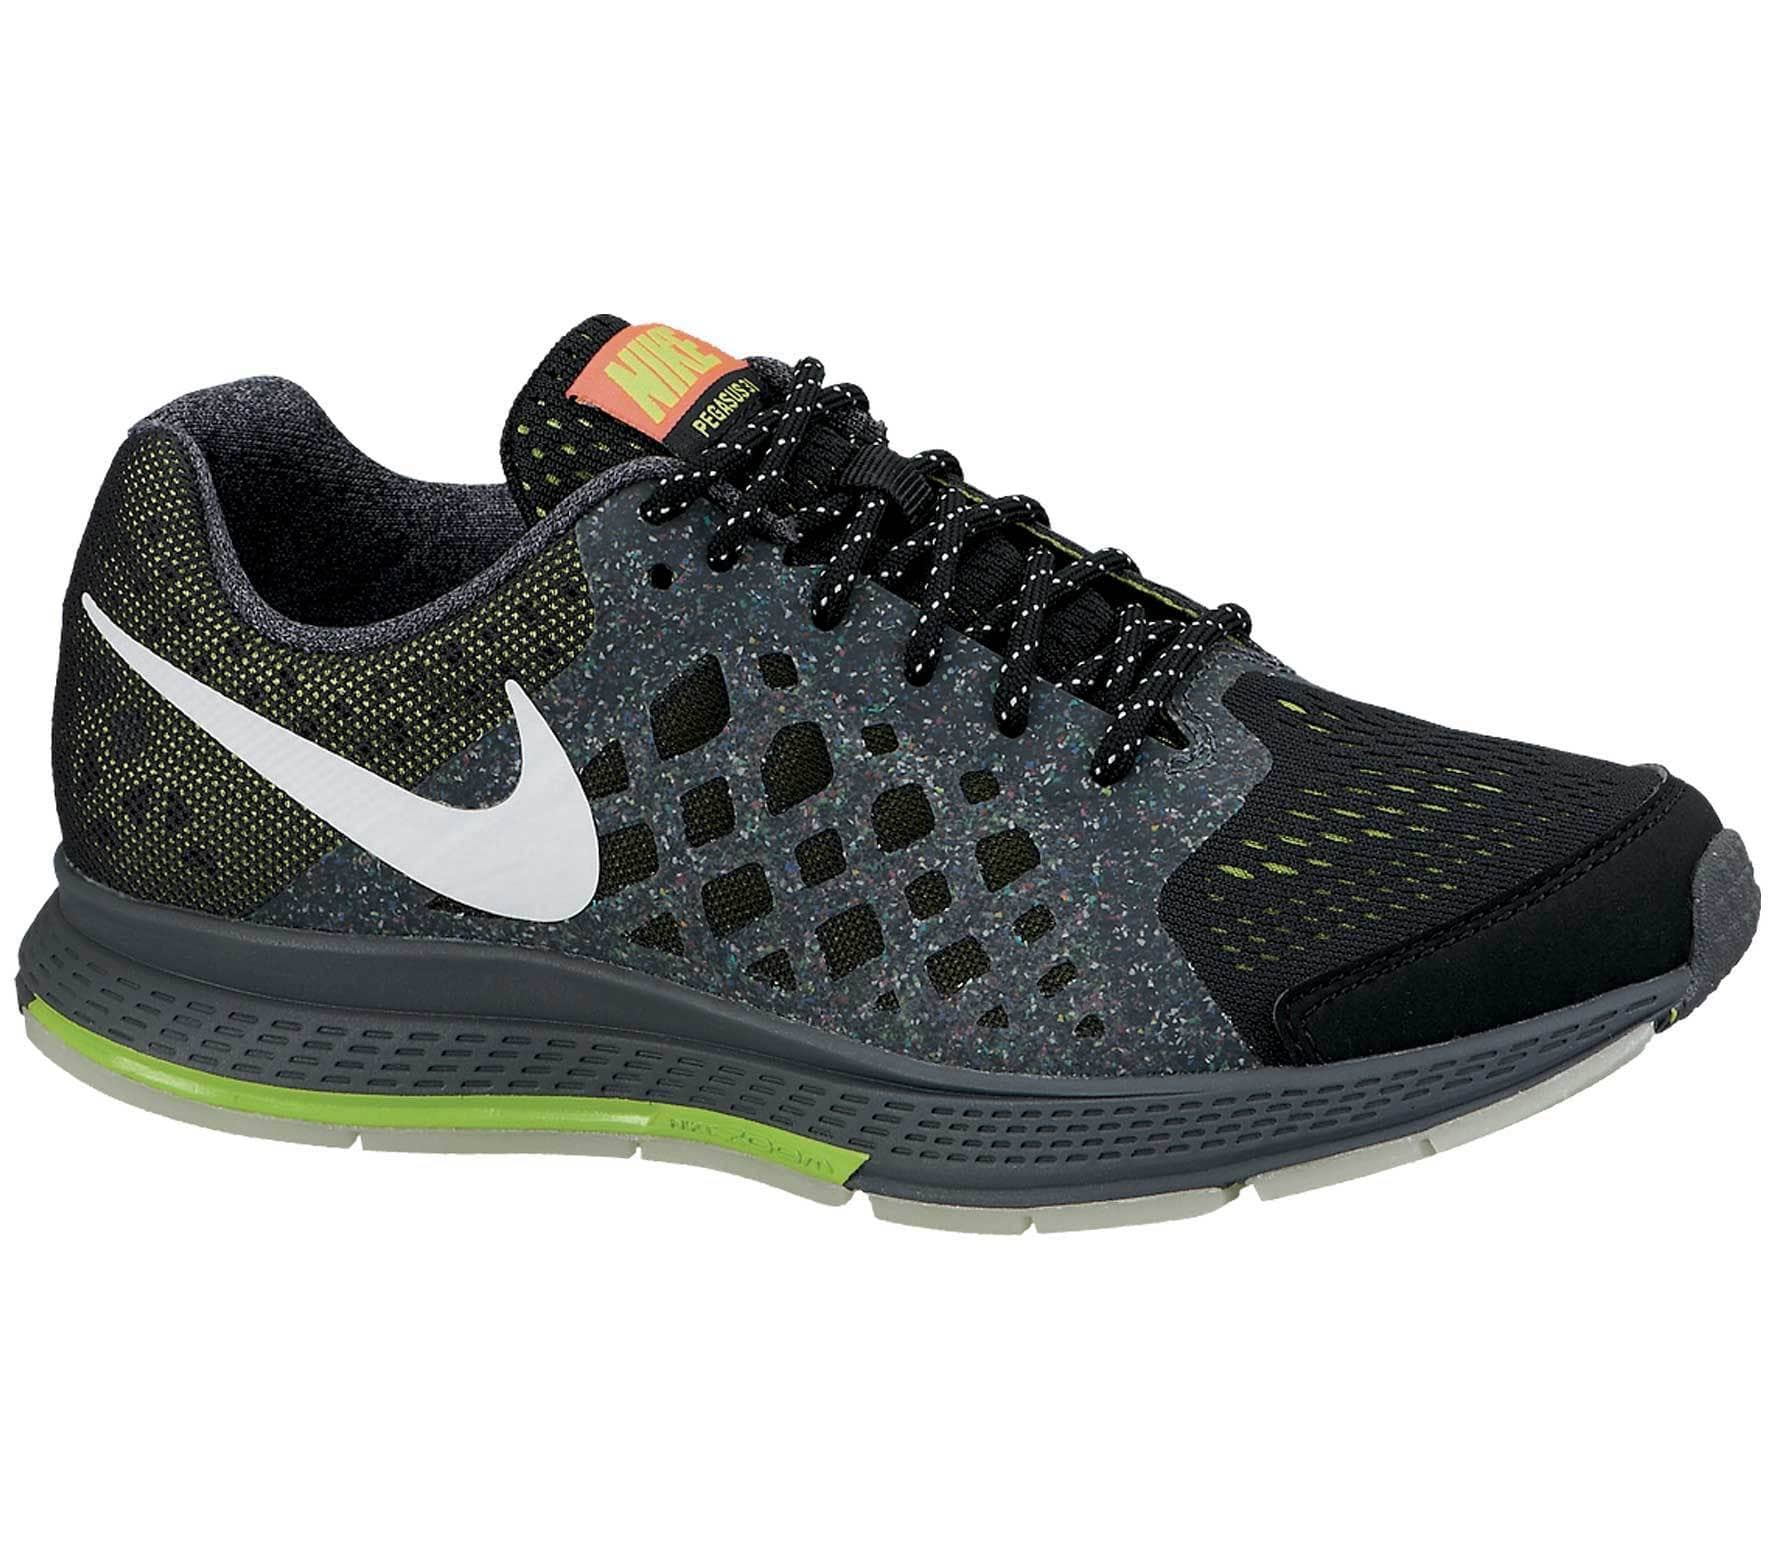 343a2cddd507a Nike - Zoom Pegasus 31 Glow Children running shoes (black grey ...